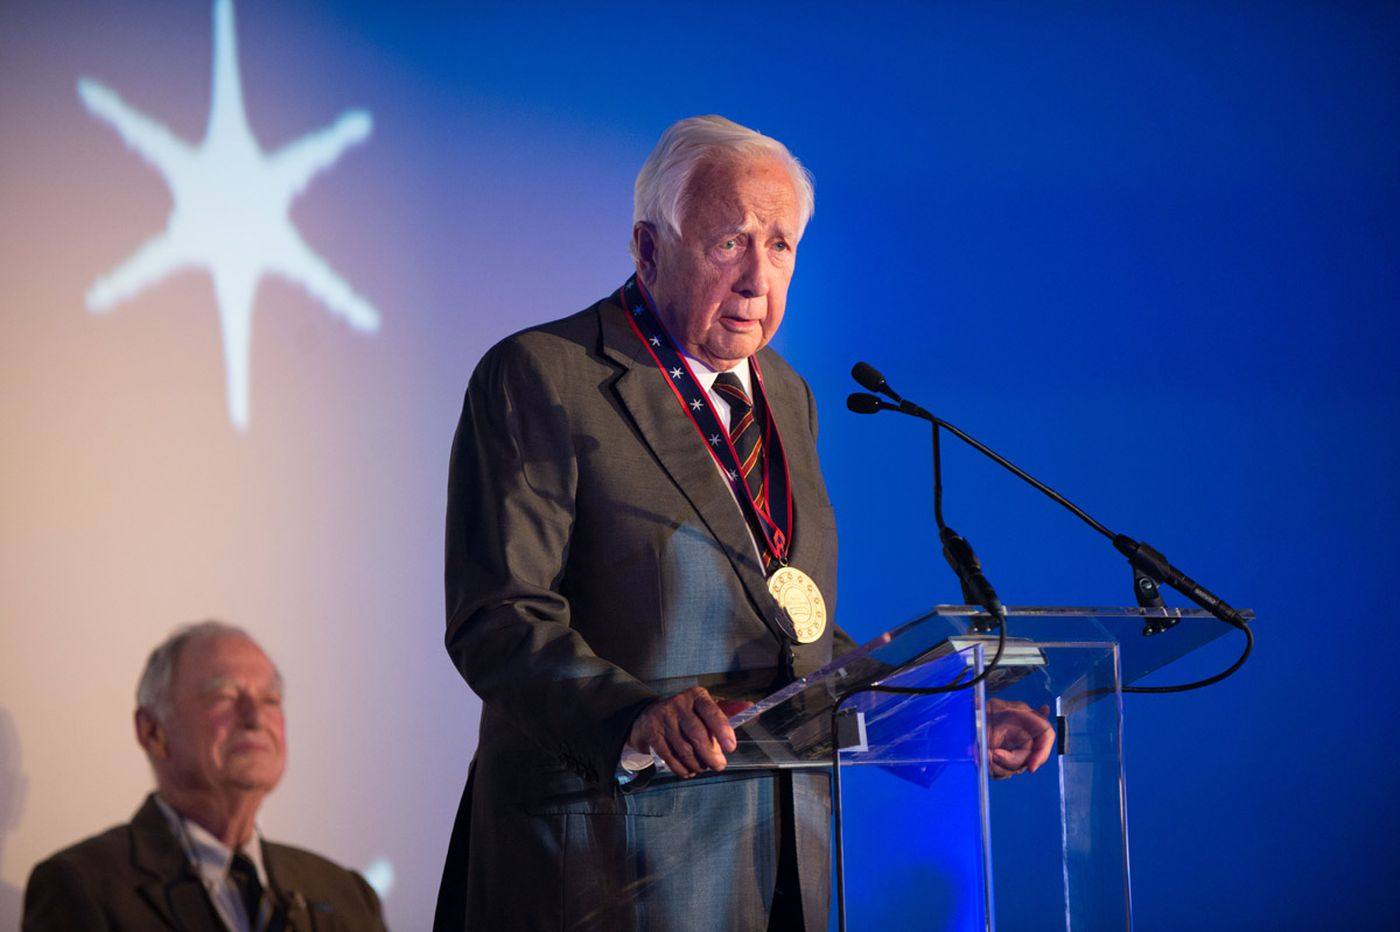 David McCullough receives inaugural Lenfest award